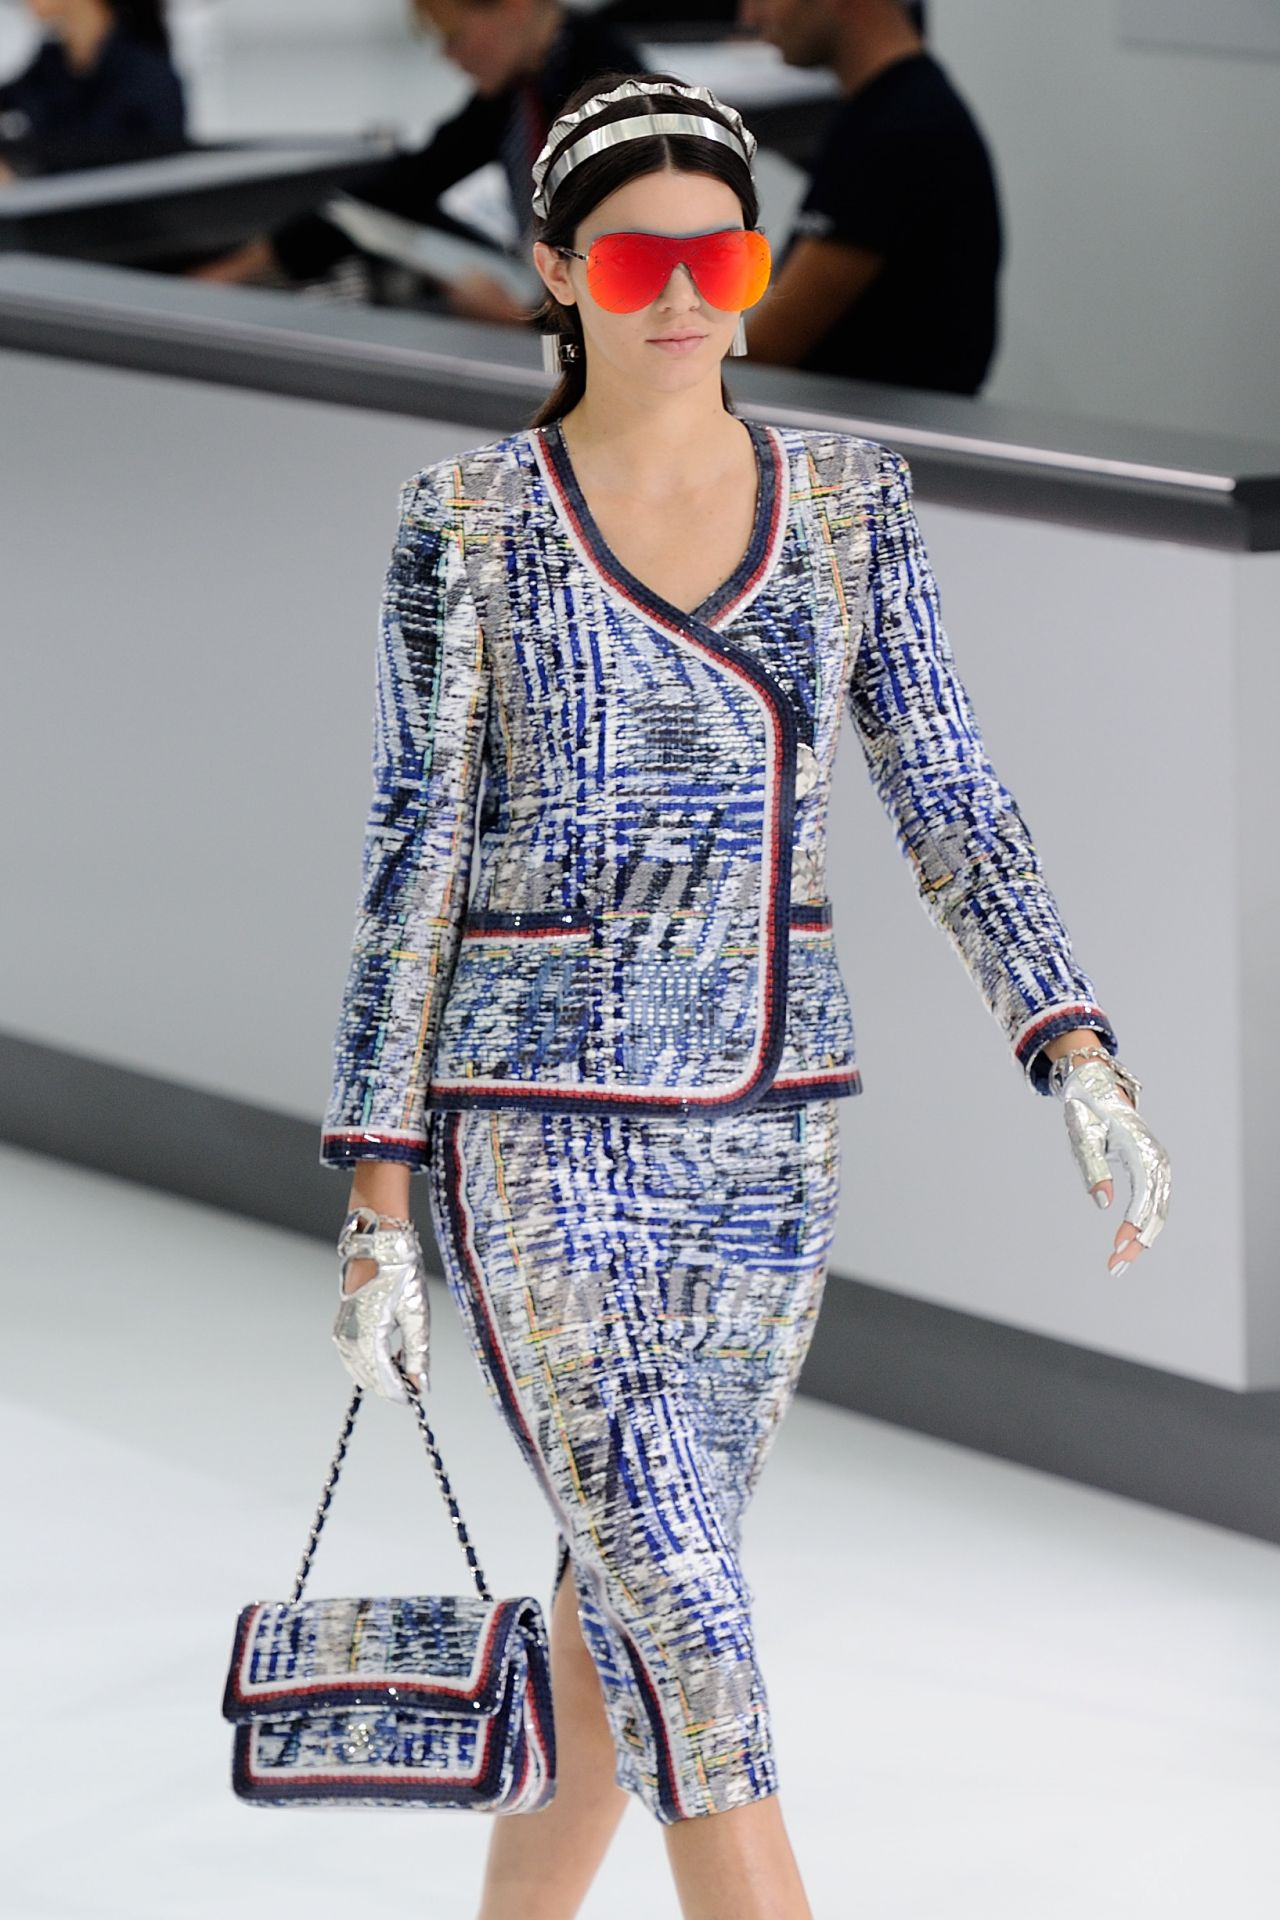 Can recommend Kendall jenner chanel fashion show 2015